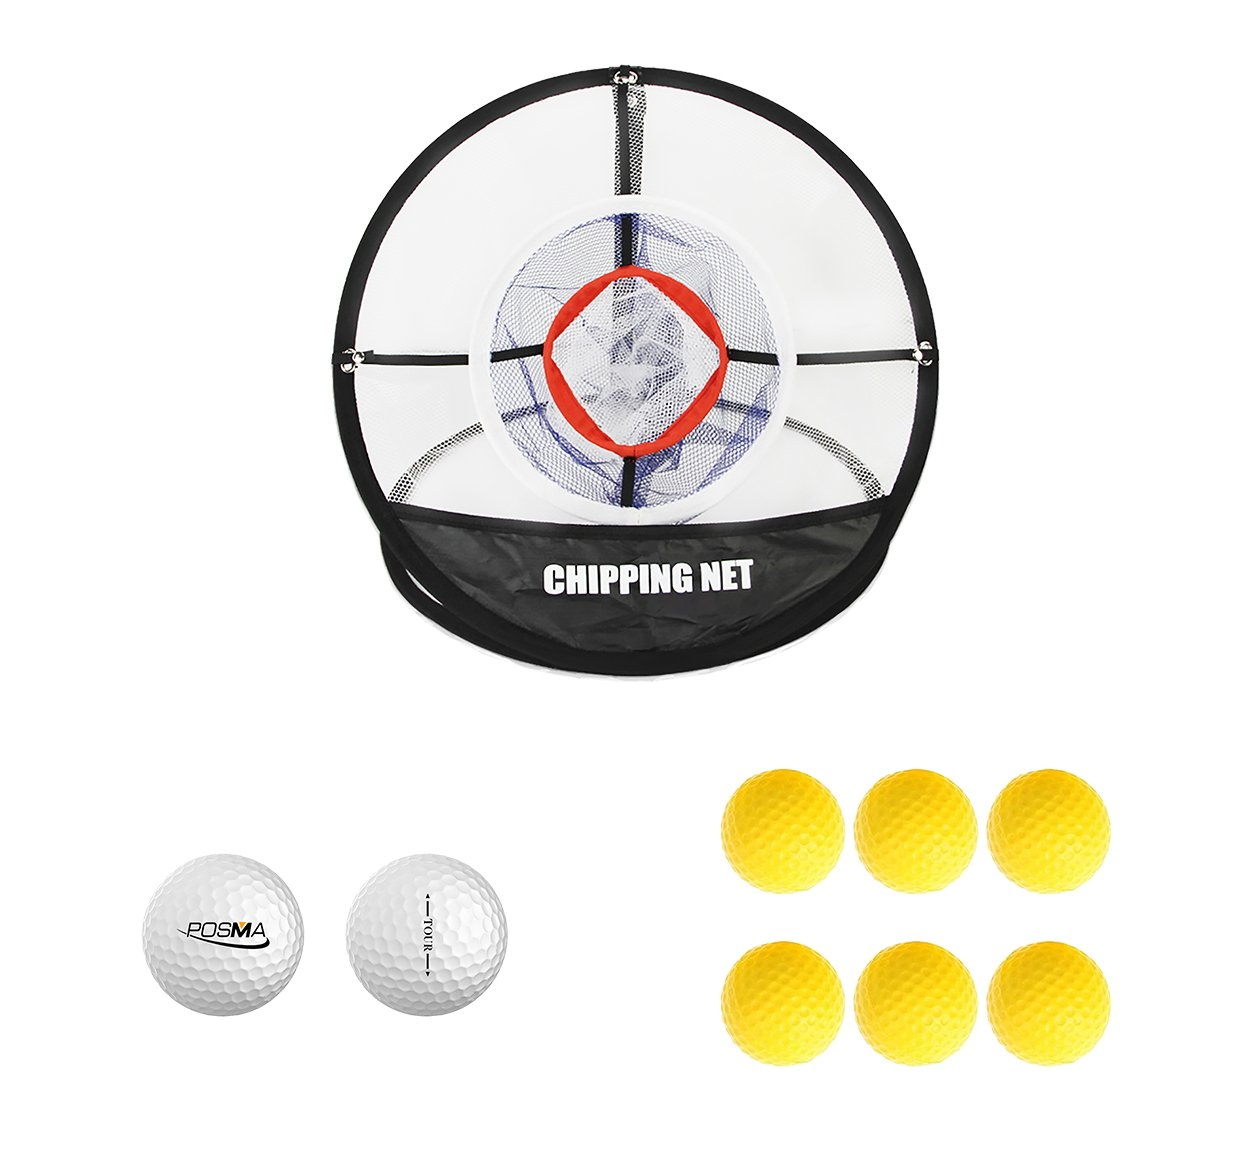 POSMA CN010A Portable Golf Training Chipping Net Bundle set with 1pc Hitting Aid Practice In/Outdoor Bag Hitting Nets + 2pcs Golf tour ball + 6pcs Golf PU ball